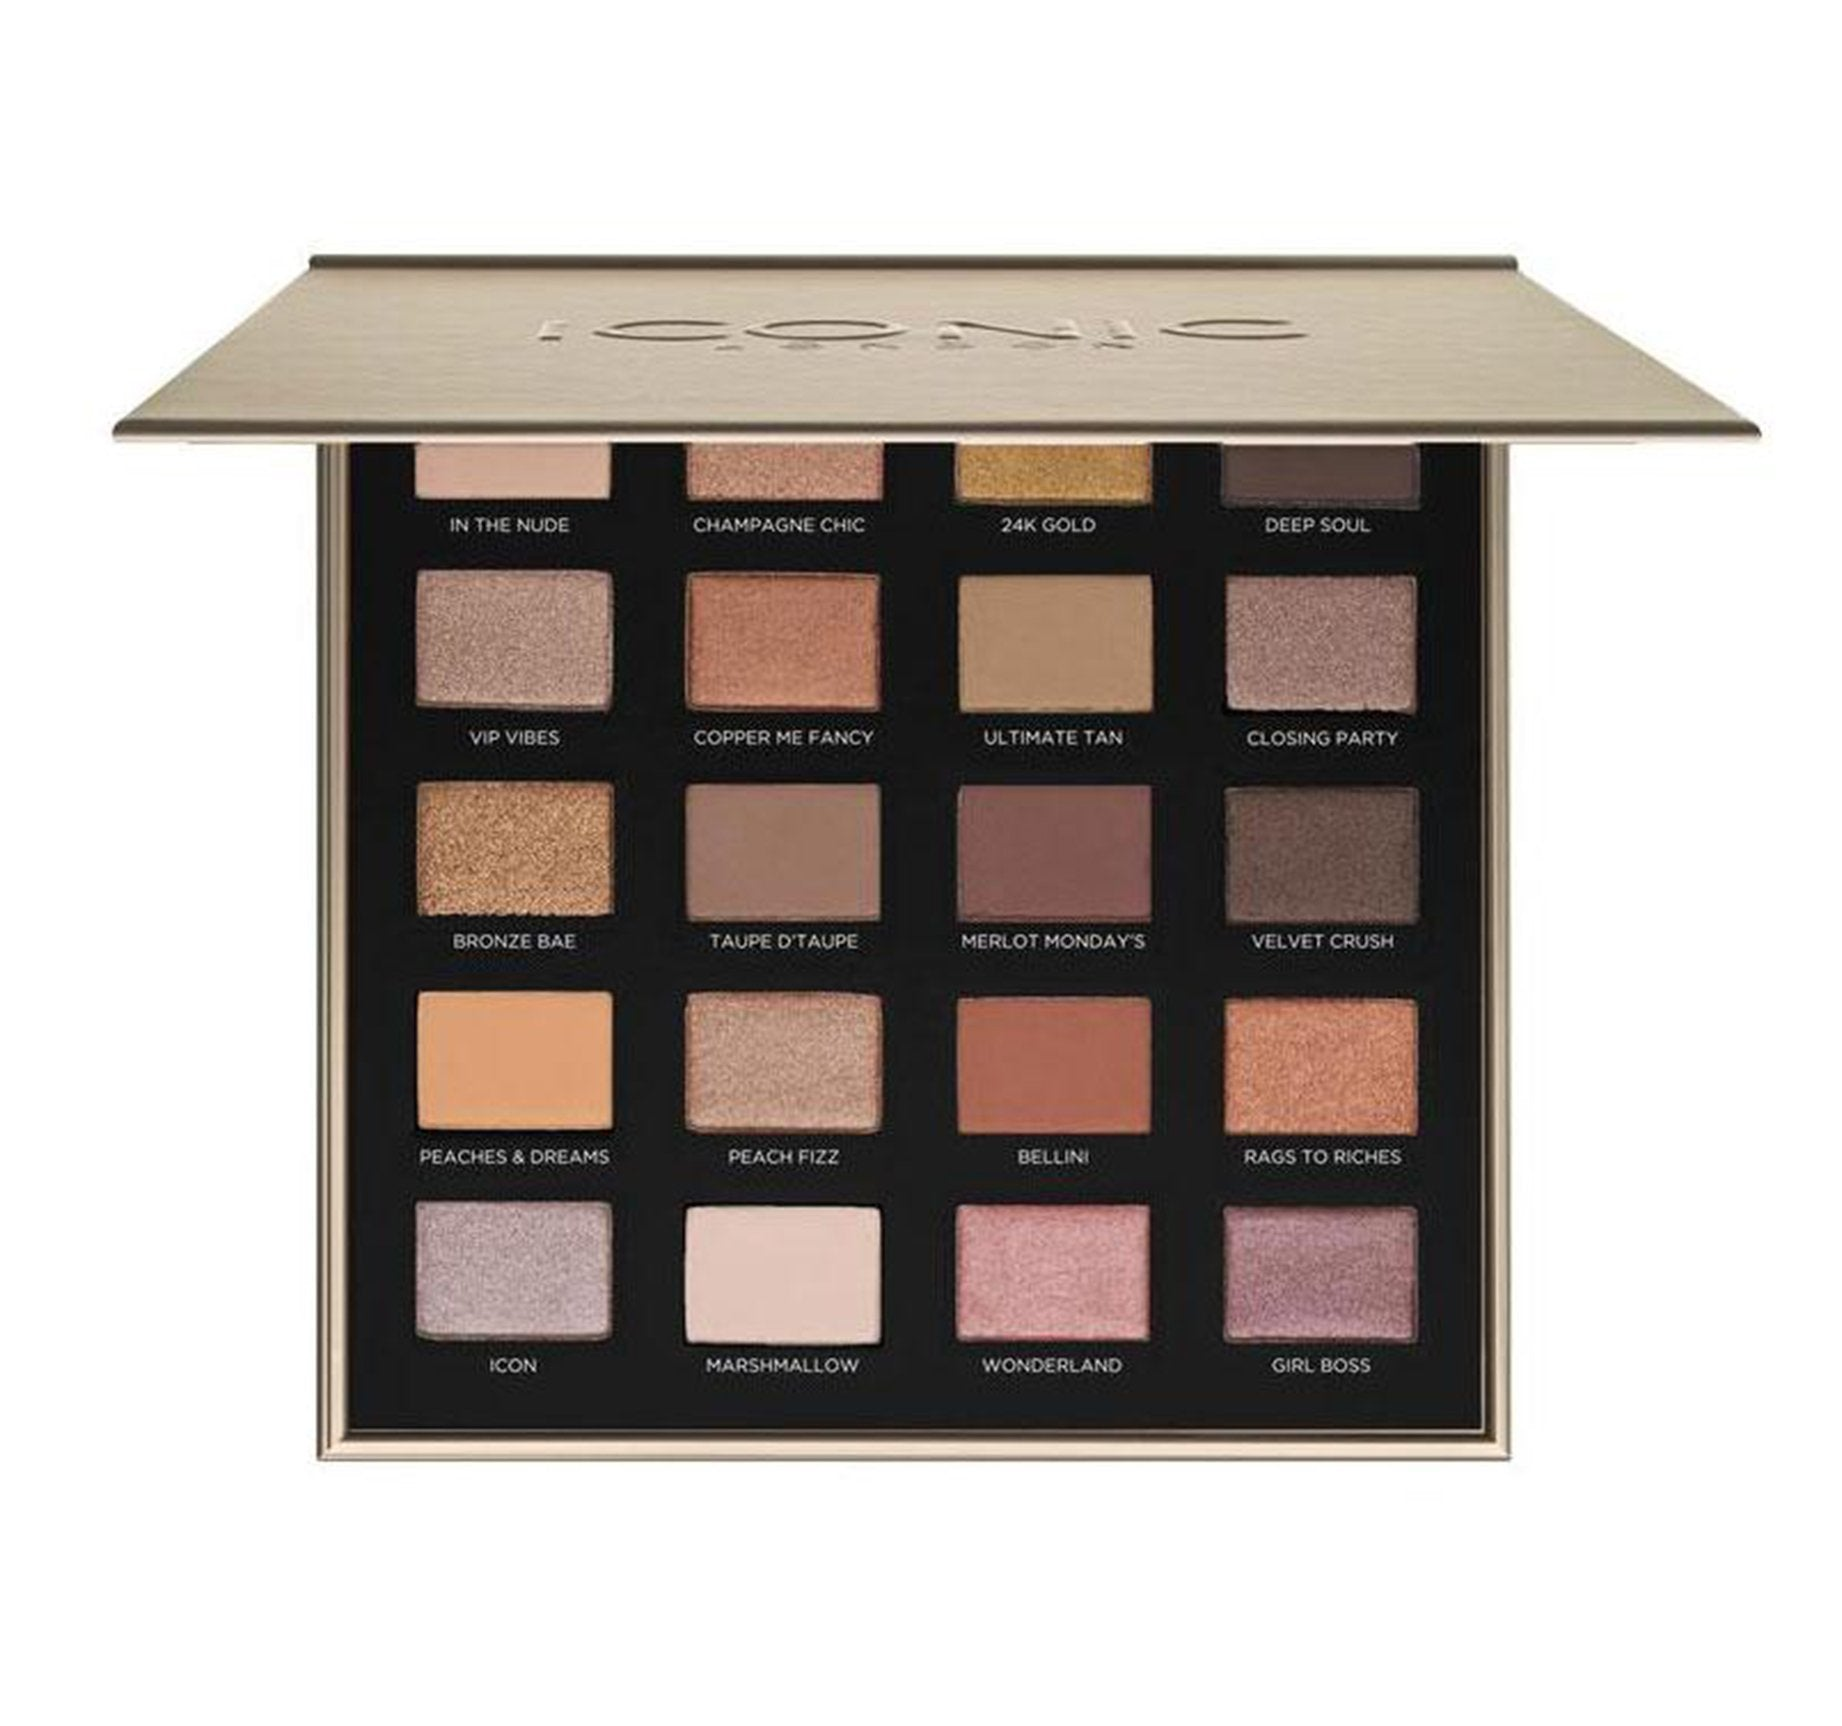 DAY TO SLAY EYESHADOW PALETTE, view larger image